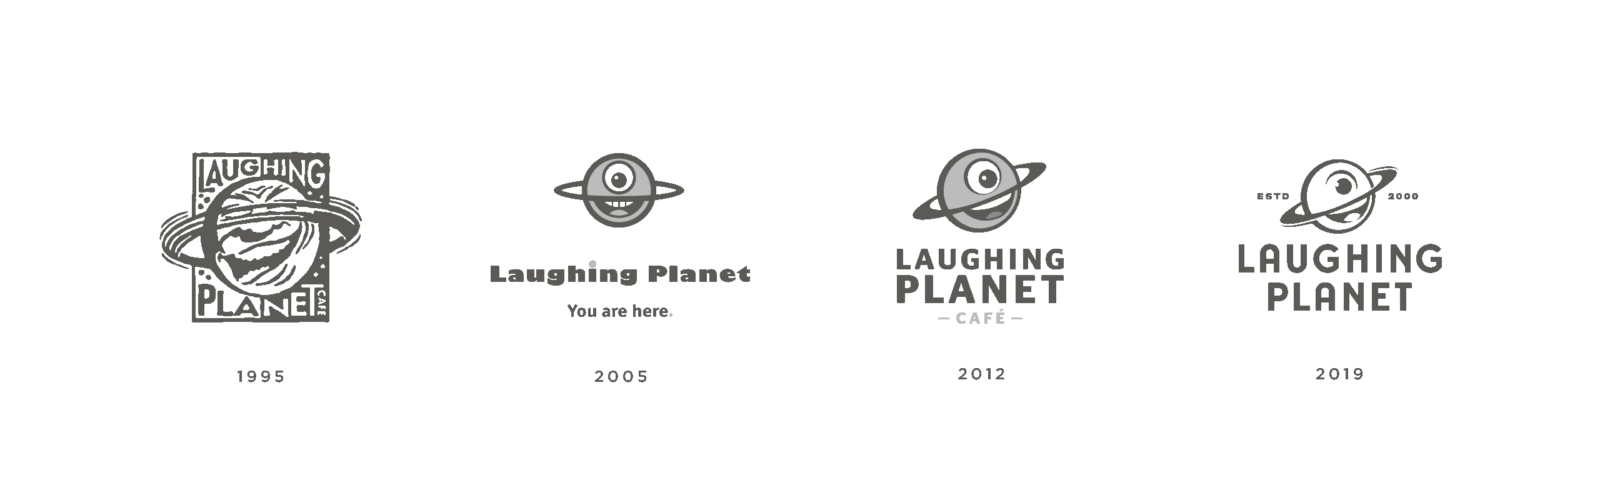 Evolution of the Laughing Planet logos